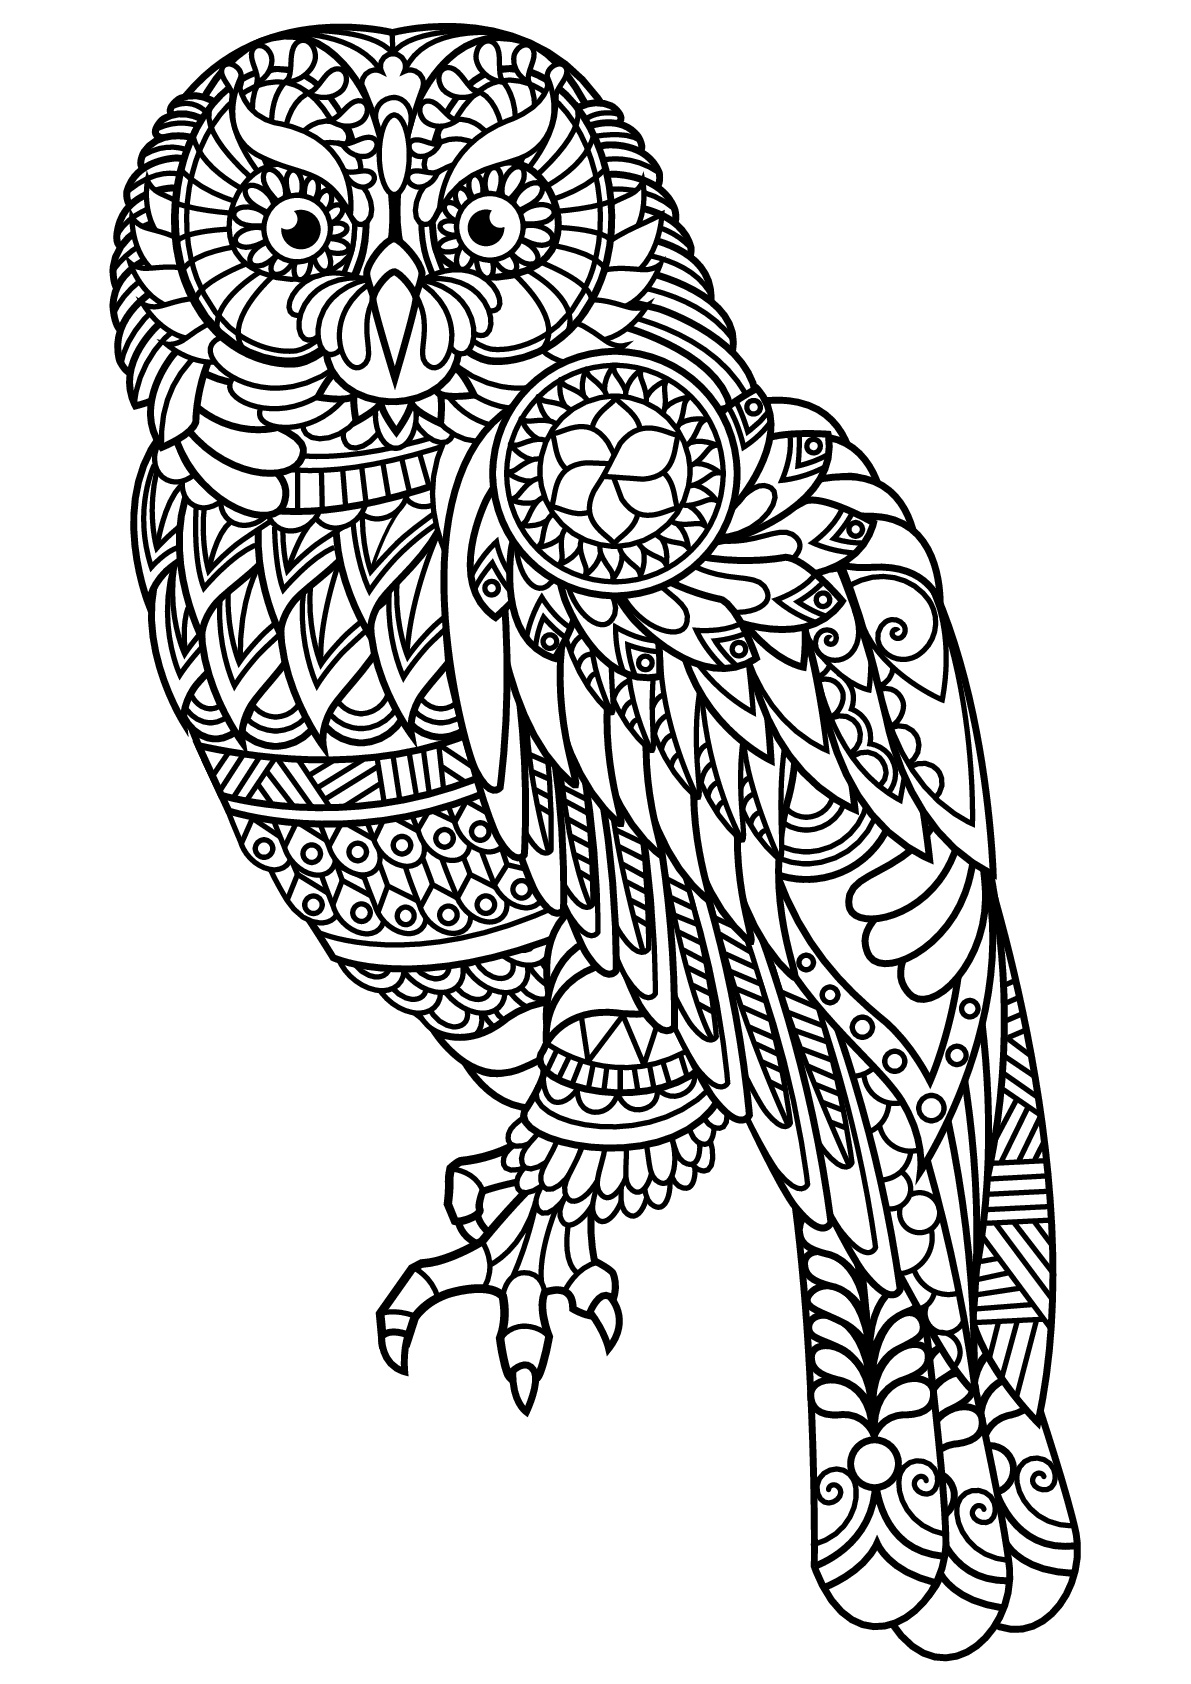 coloring websites detailed coloring pages to download and print for free websites coloring